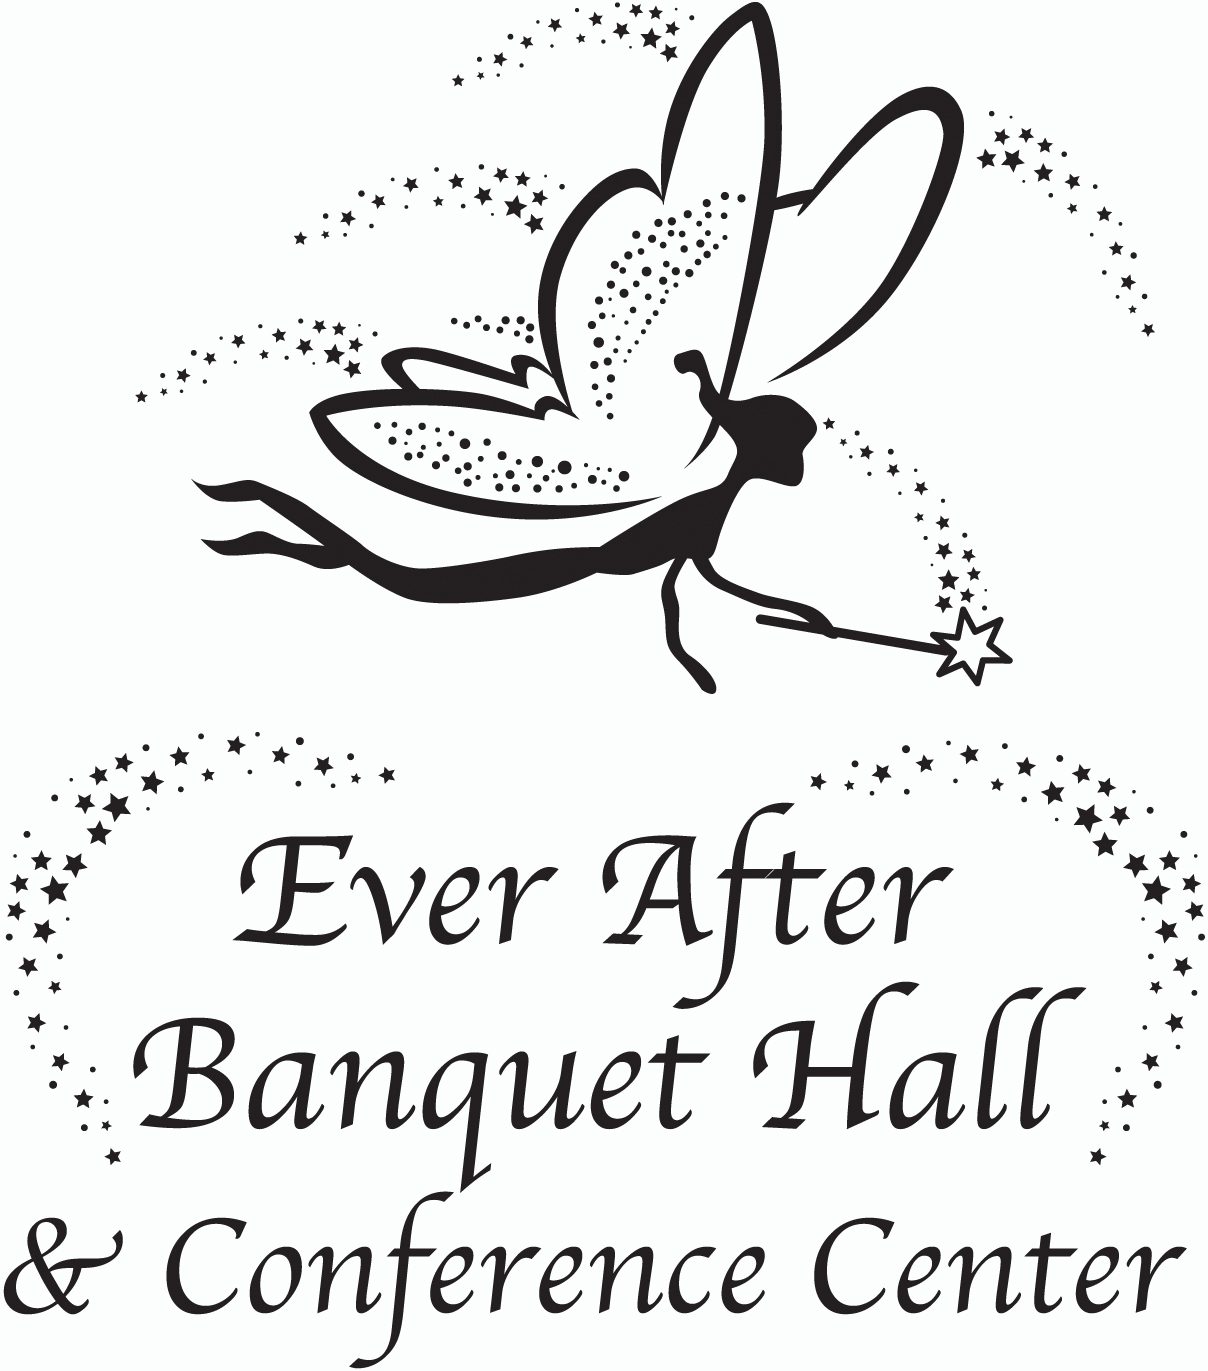 Ever After Banquet Hall